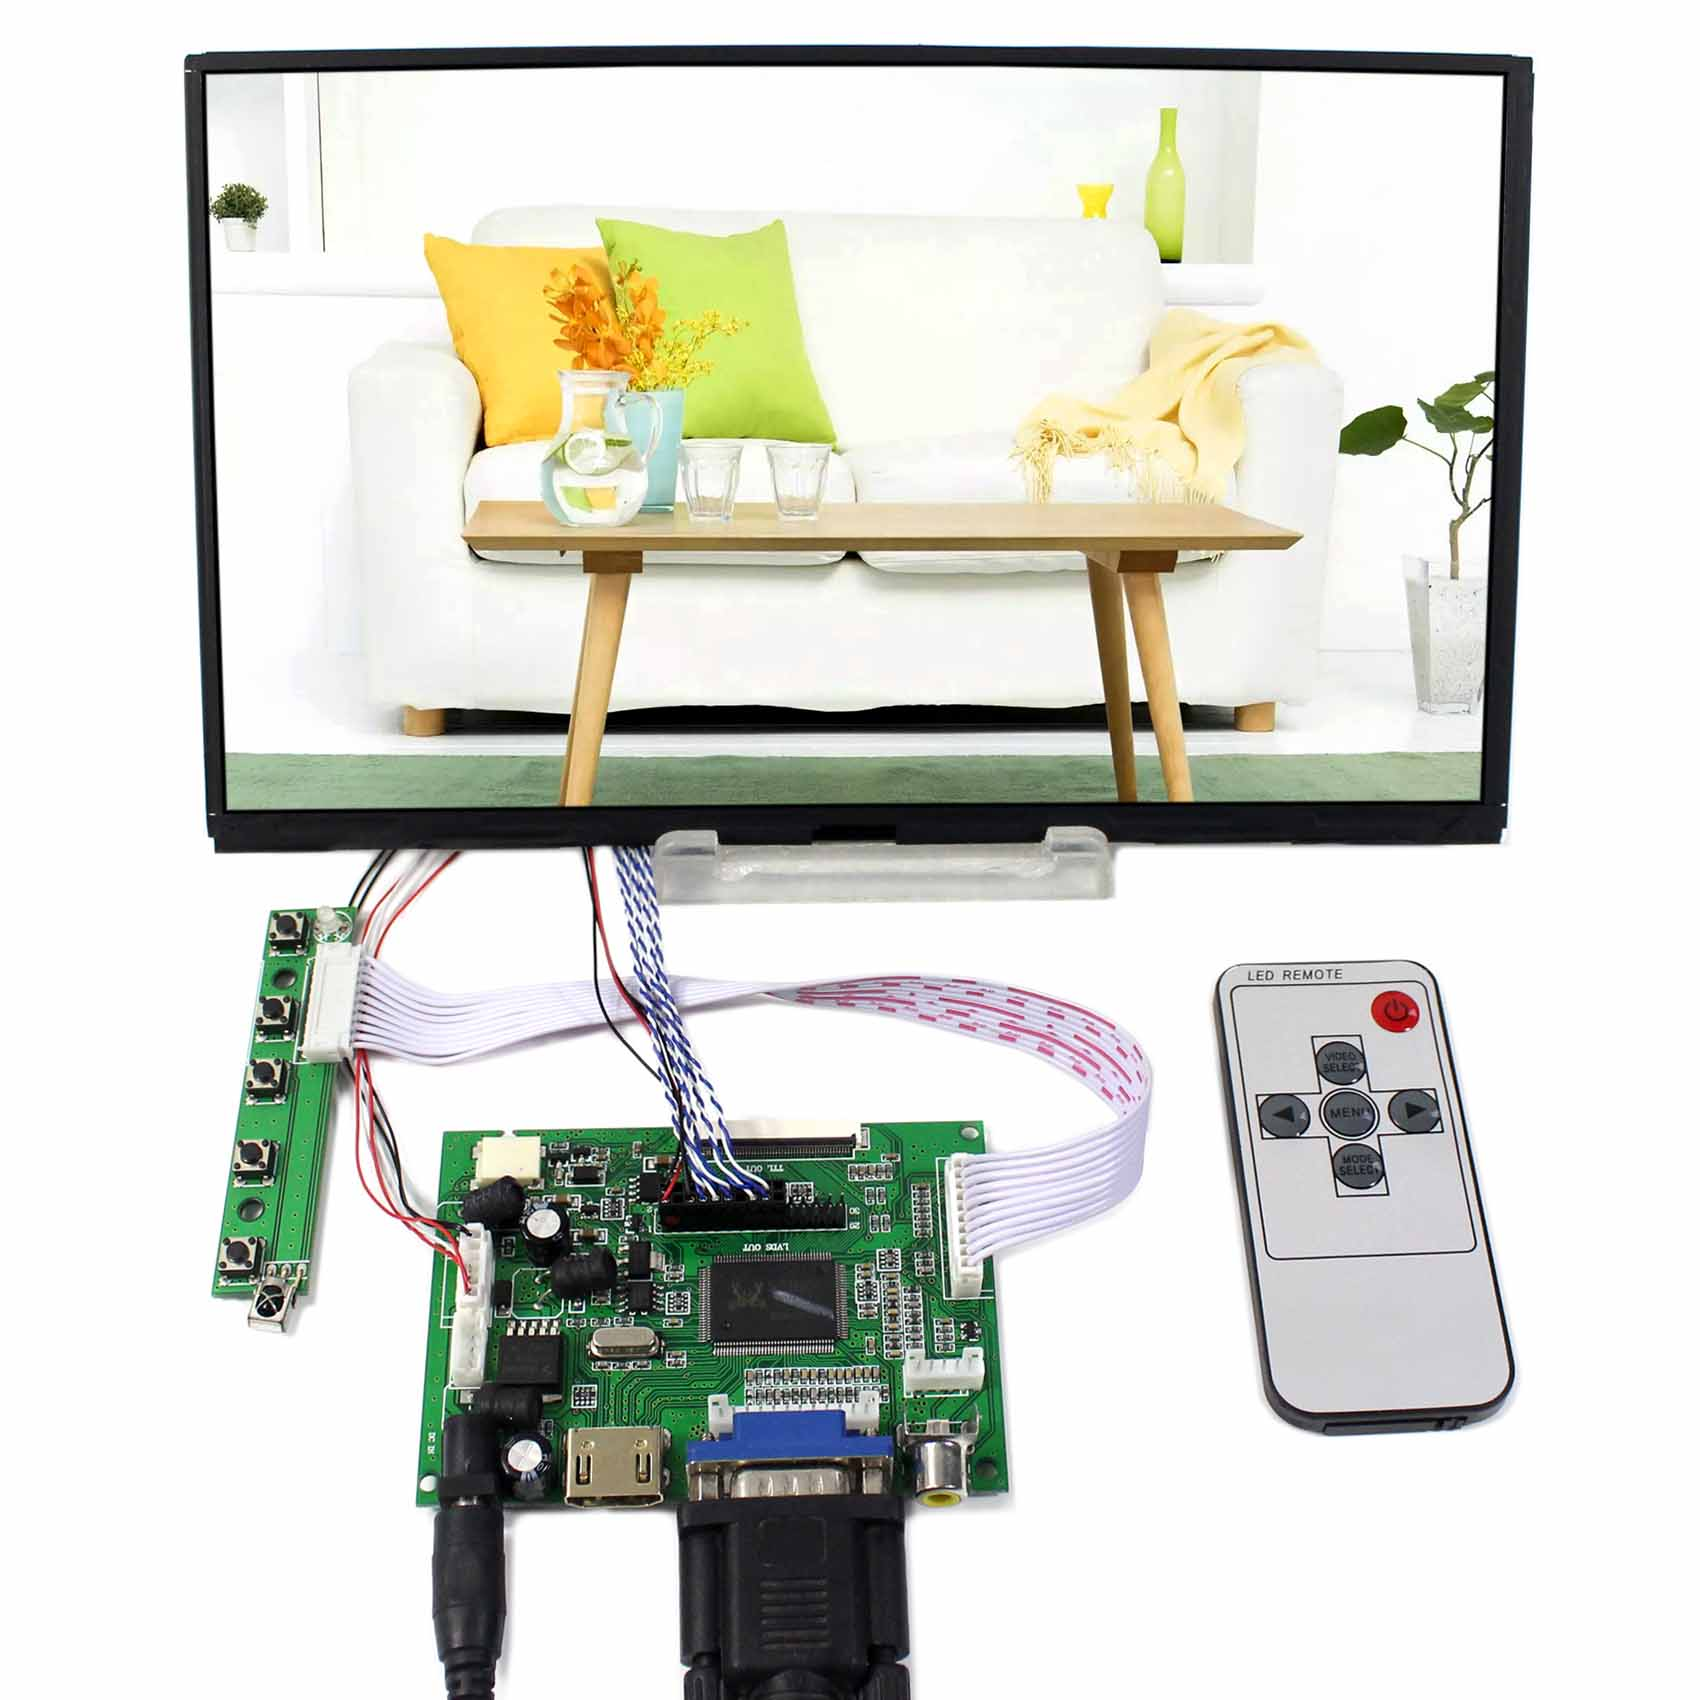 HDMI VGA 2AV LCD Controller Board+10.1inch B101XAN01 1366x768 IPS LCD Screen vga hdmi lcd edp controller board led diy kit for lp116wh6 spa1 lp116wh6 spa2 11 6 inch edp 30 pins 1lane 1366x768 wled ips tft